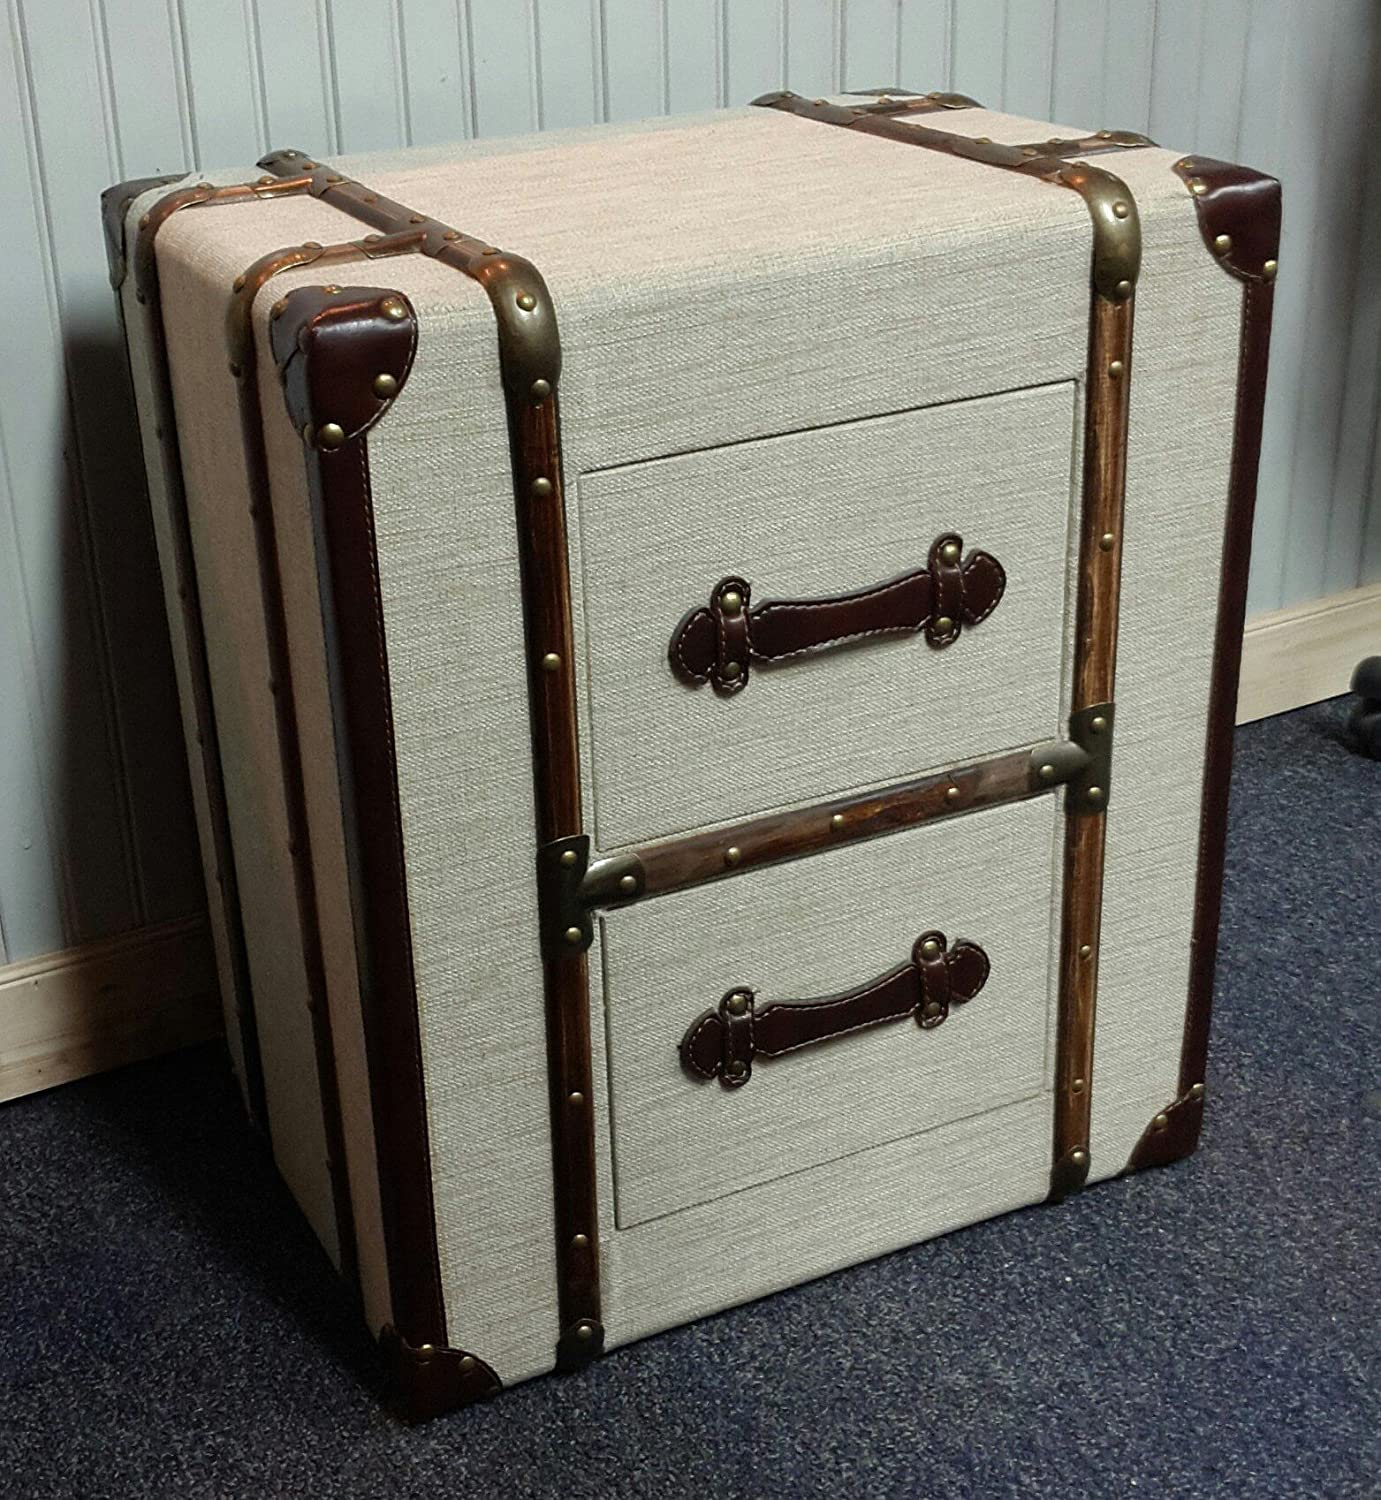 trunk nightstands pair l suitcase silver on with industrial moc emb drawers storage croc chest campaign of wheels luggage